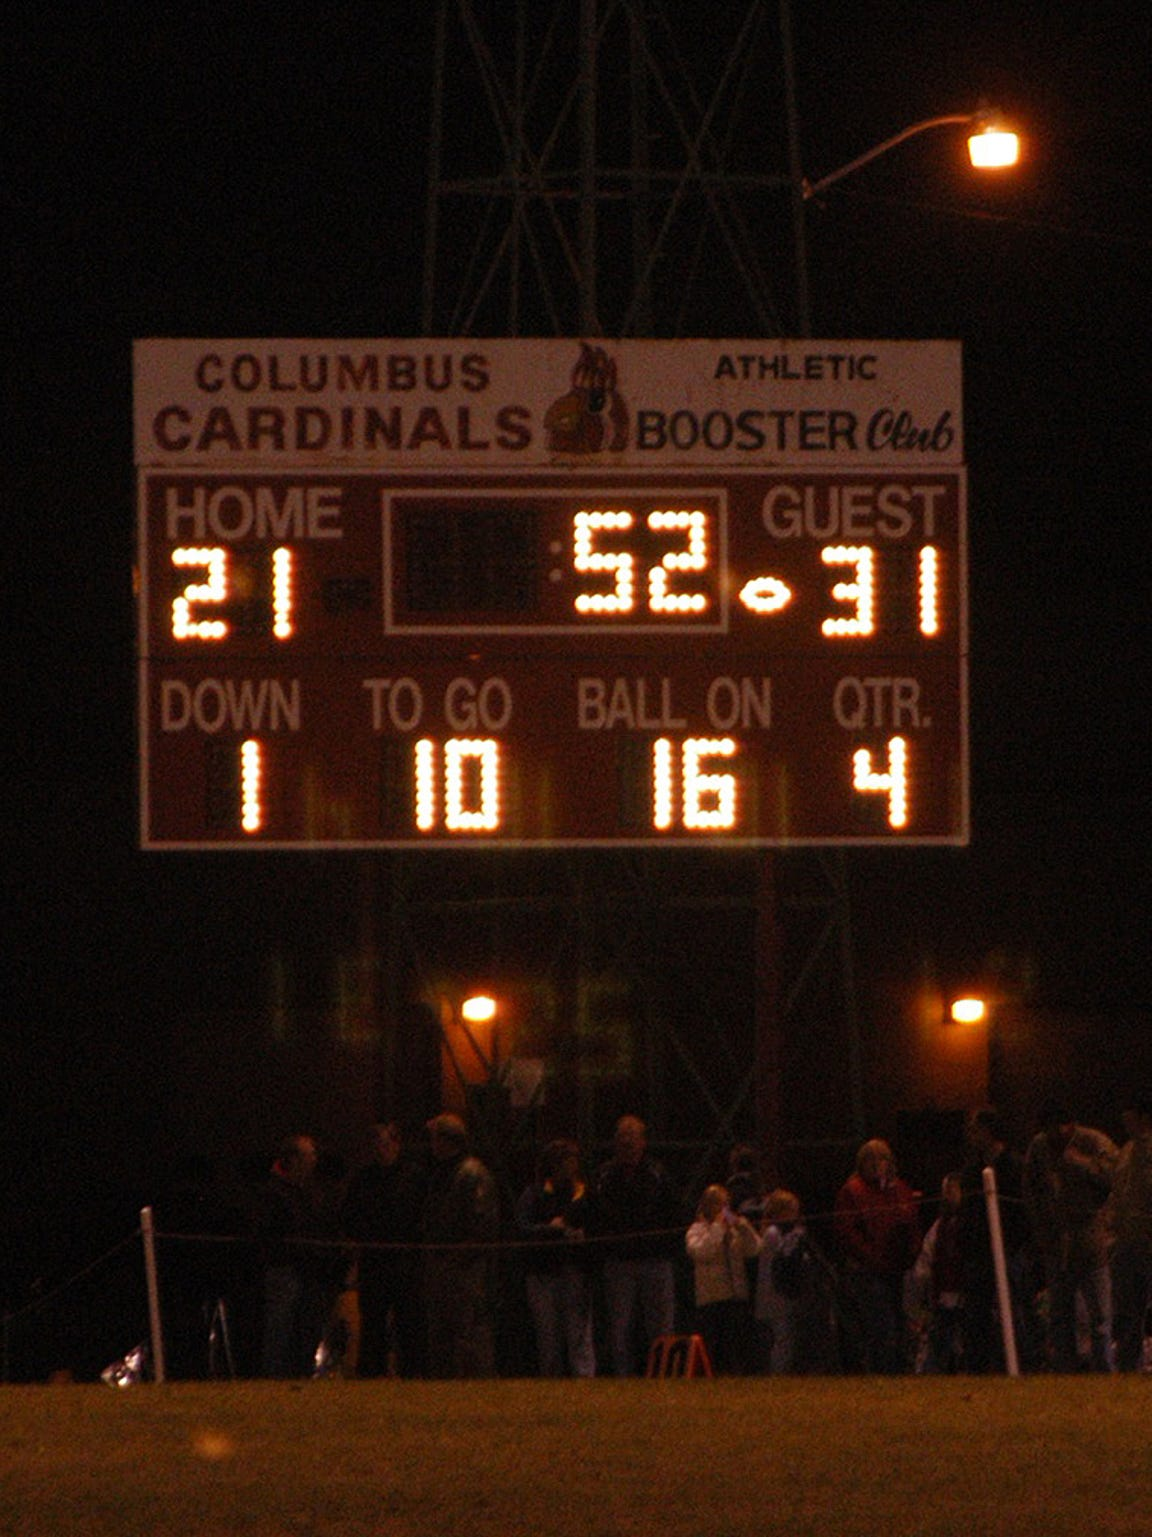 The scoreboard shows Cambridge leading Columbus after